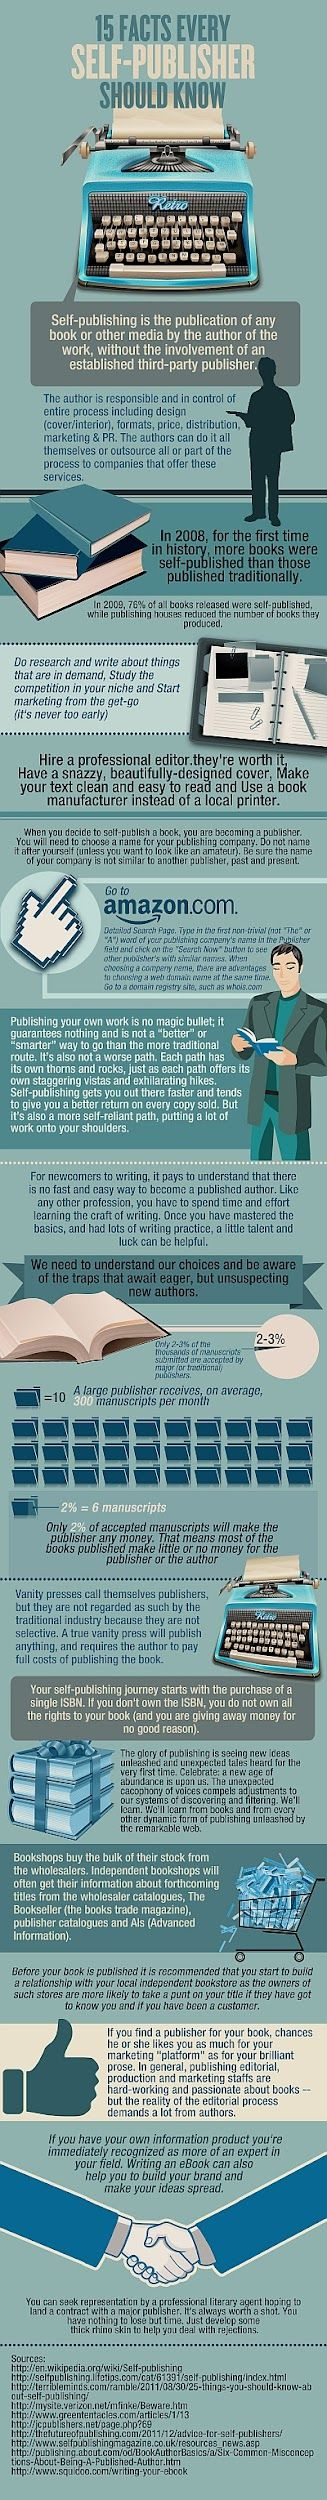 15 facts about self-publishing  We all need to know more this is great info